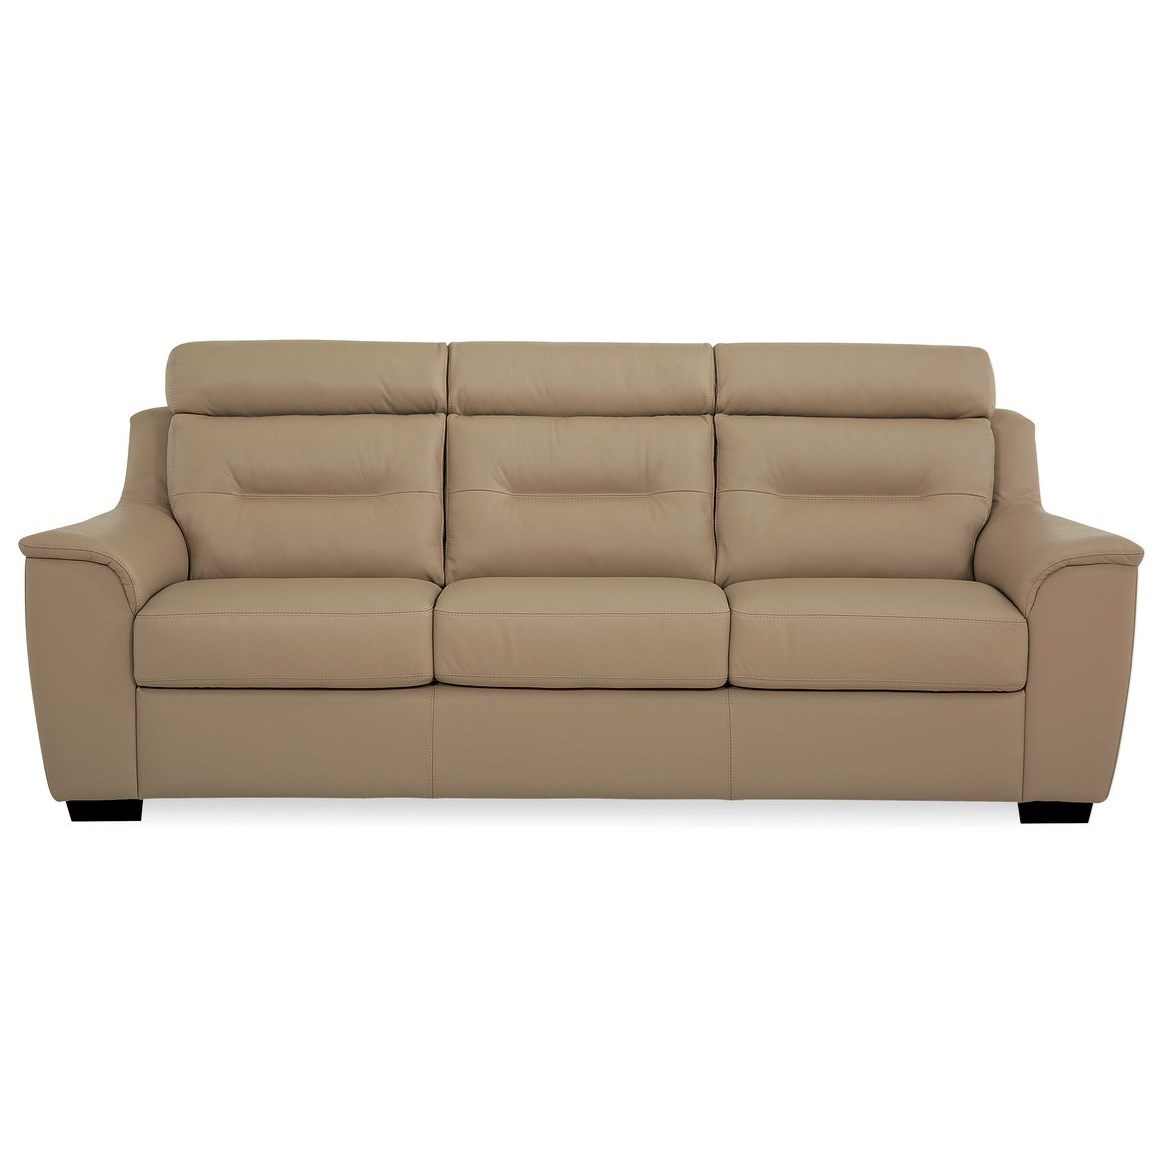 Palliser Denmark Contemporary Leather Sofa With Exposed